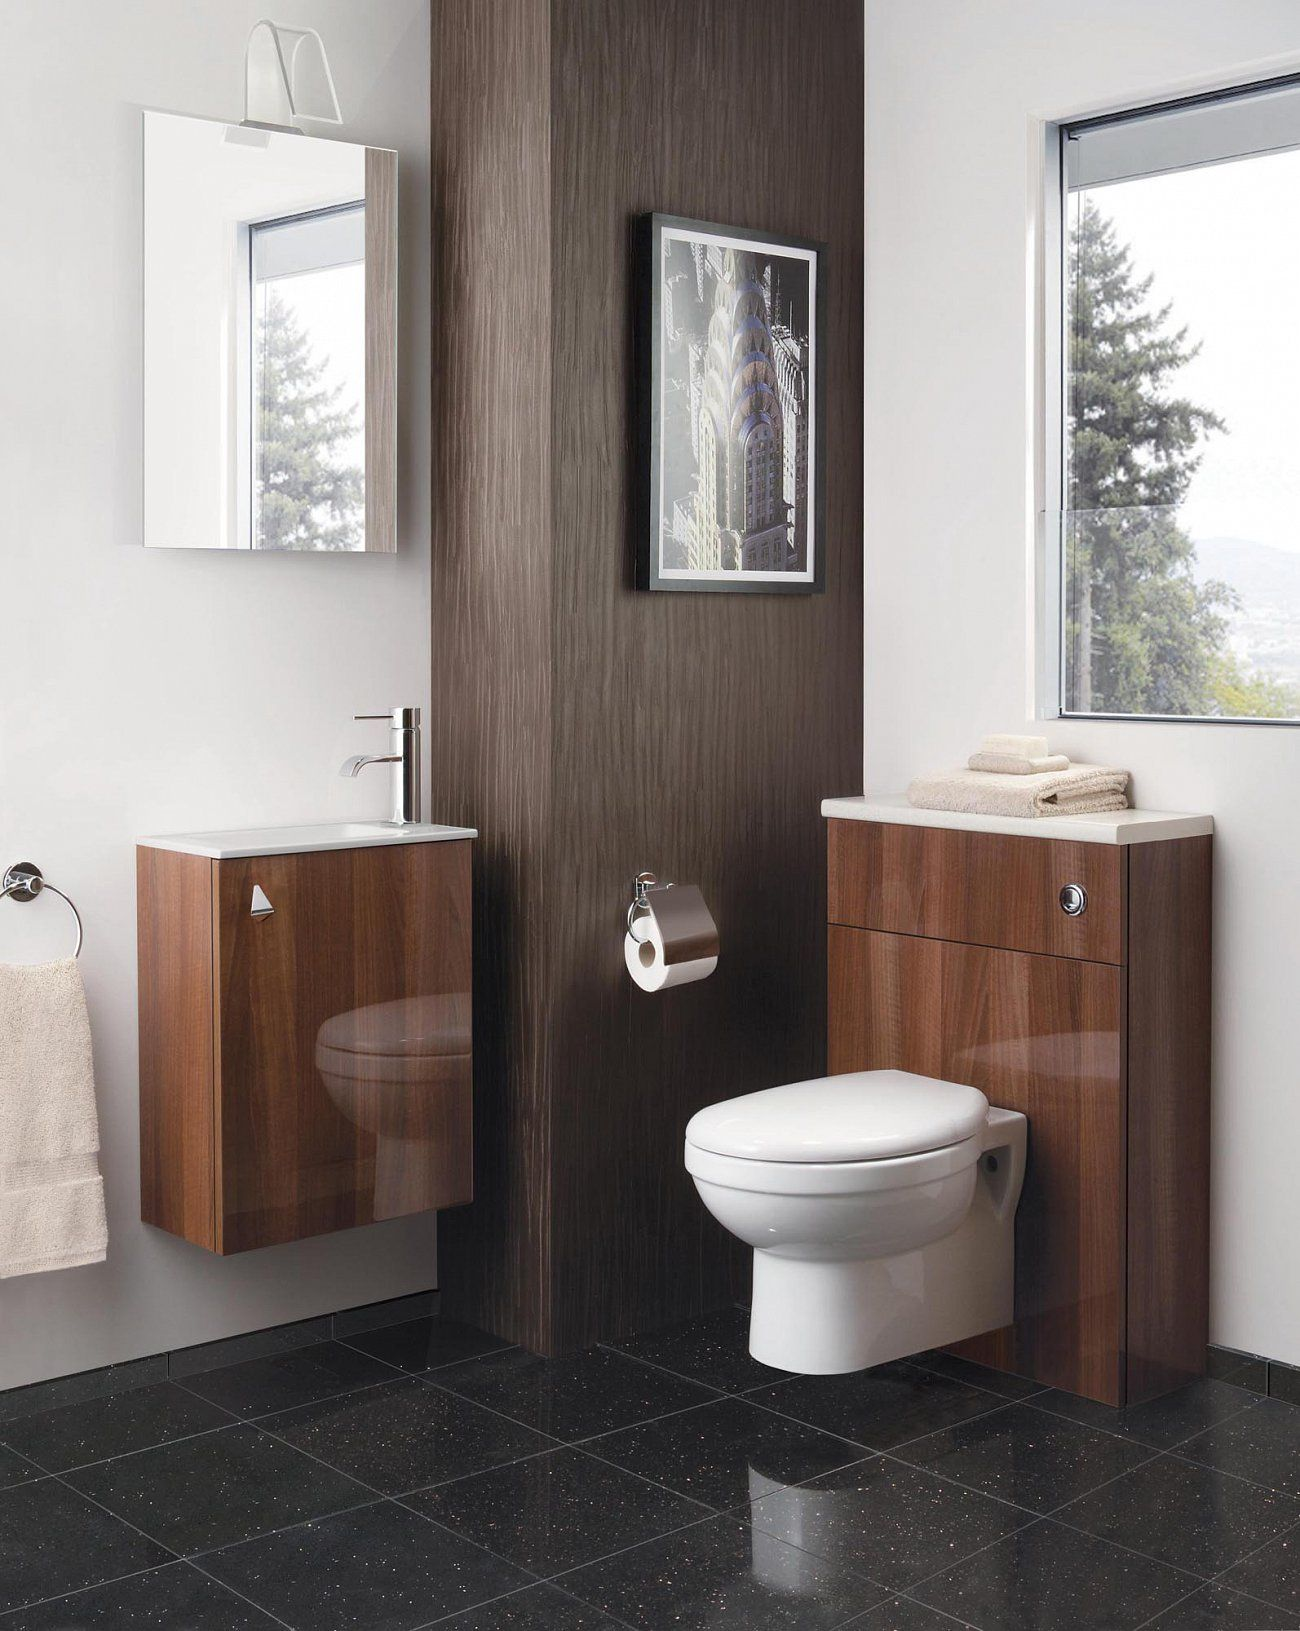 EnSuites Design Gallery Town Kitchens Fitted bathroom